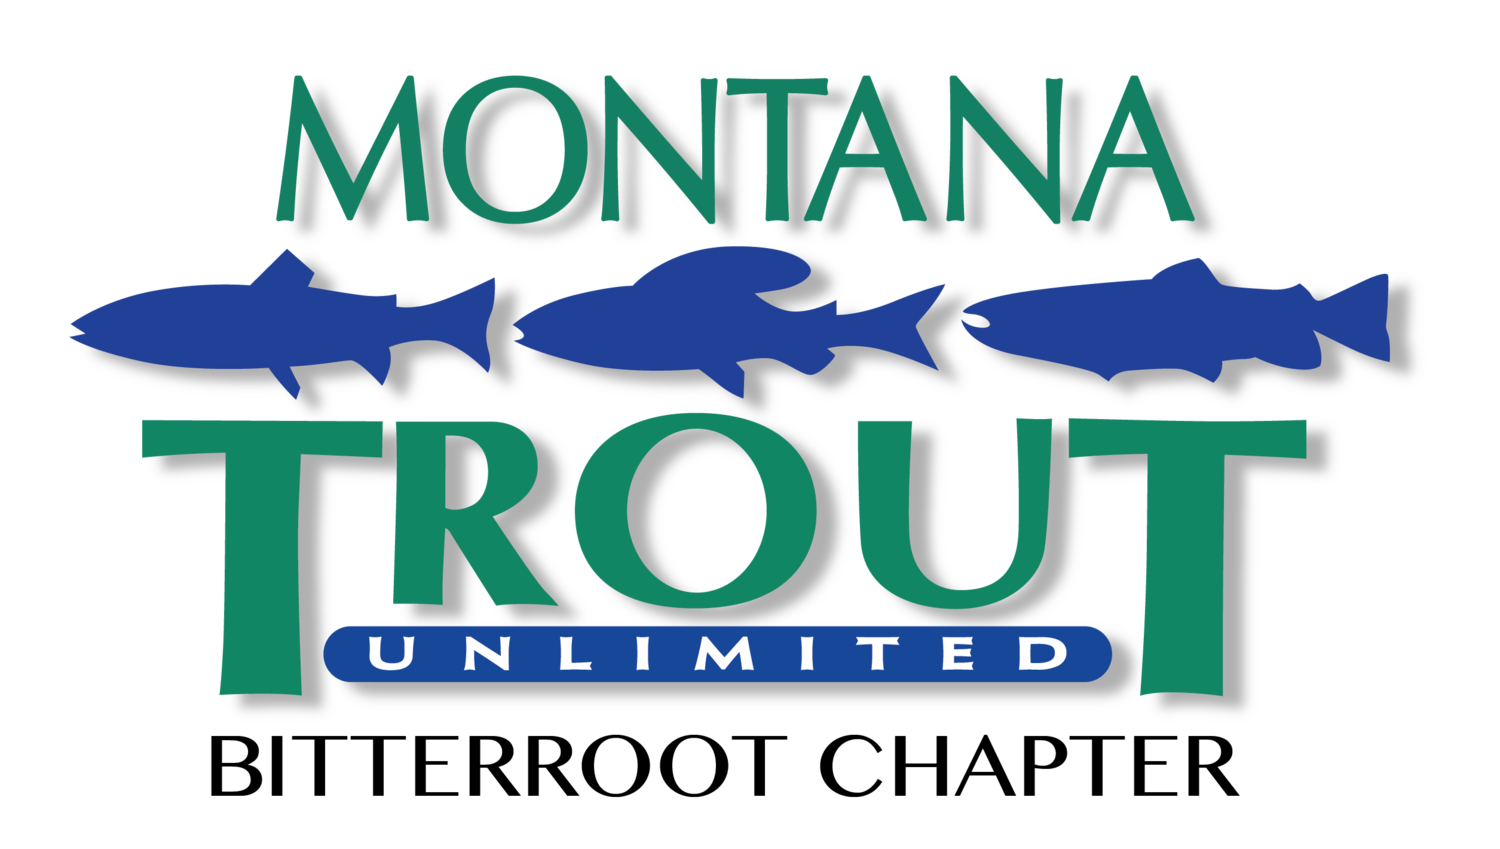 Bitterroot Trout Unlimited